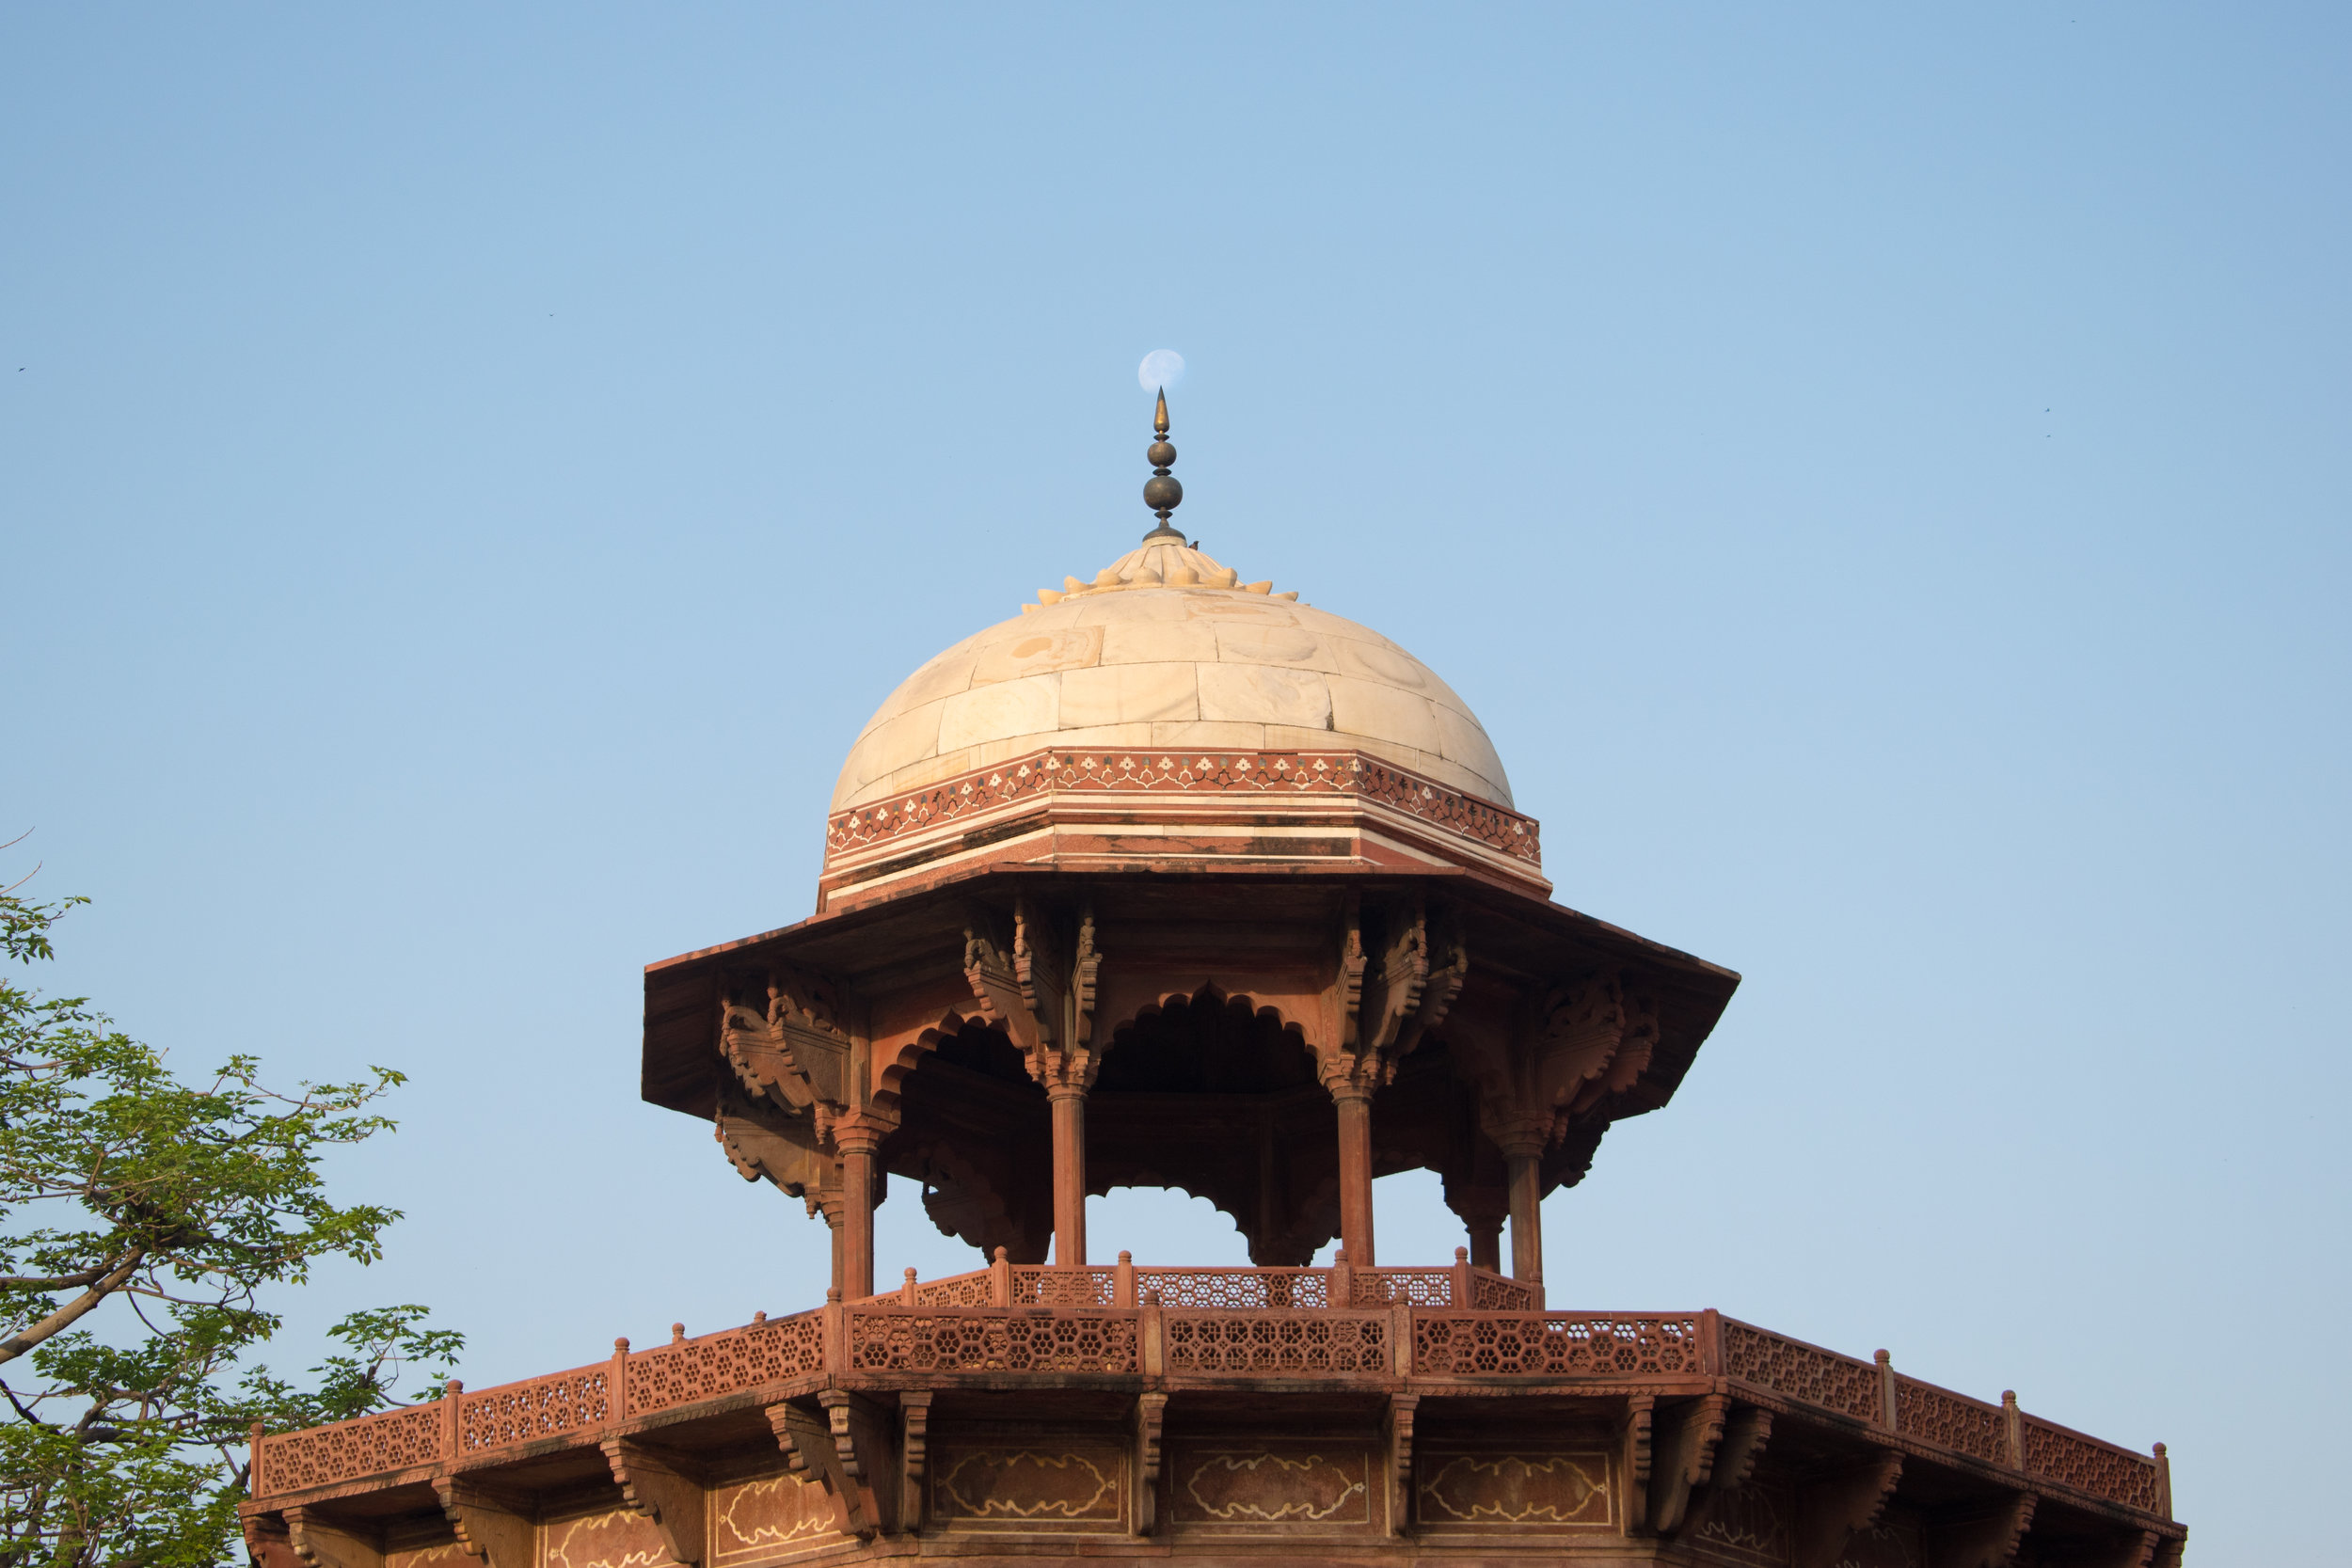 A Decorative Tower in The Taj Mahal Complex in India